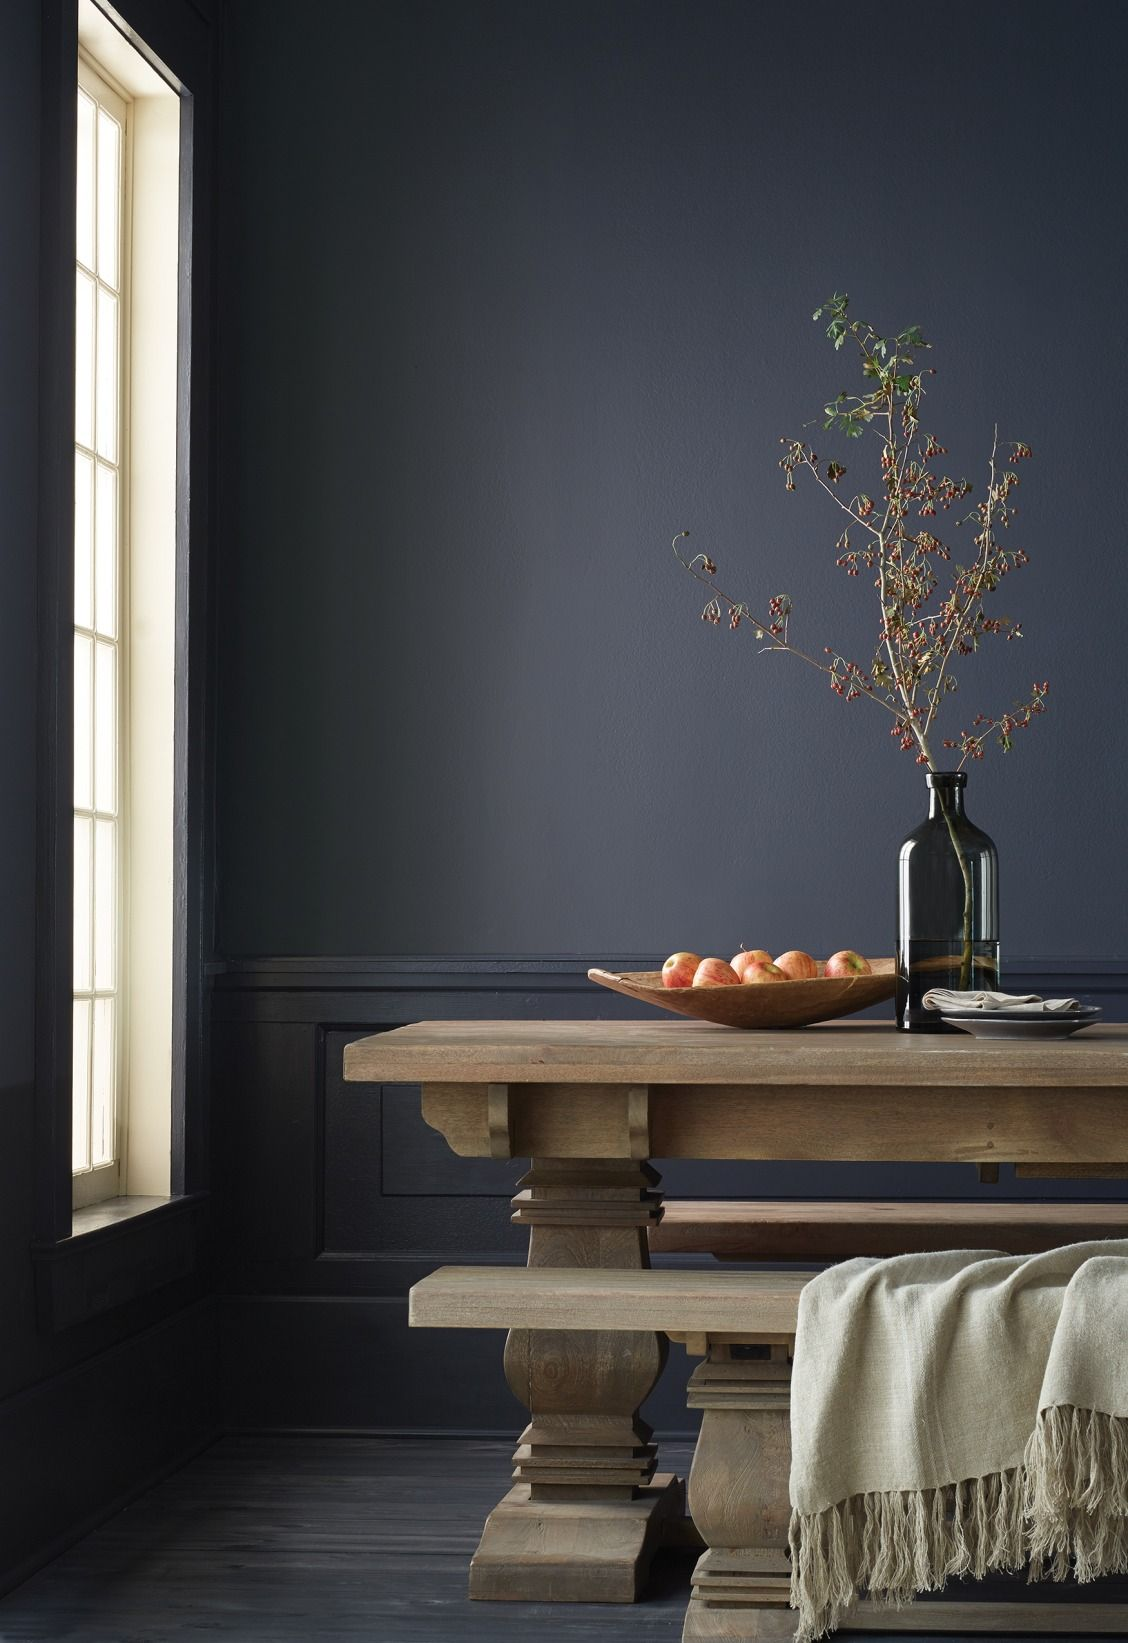 Our Aldridge Extendable Dining Table and Bench are the